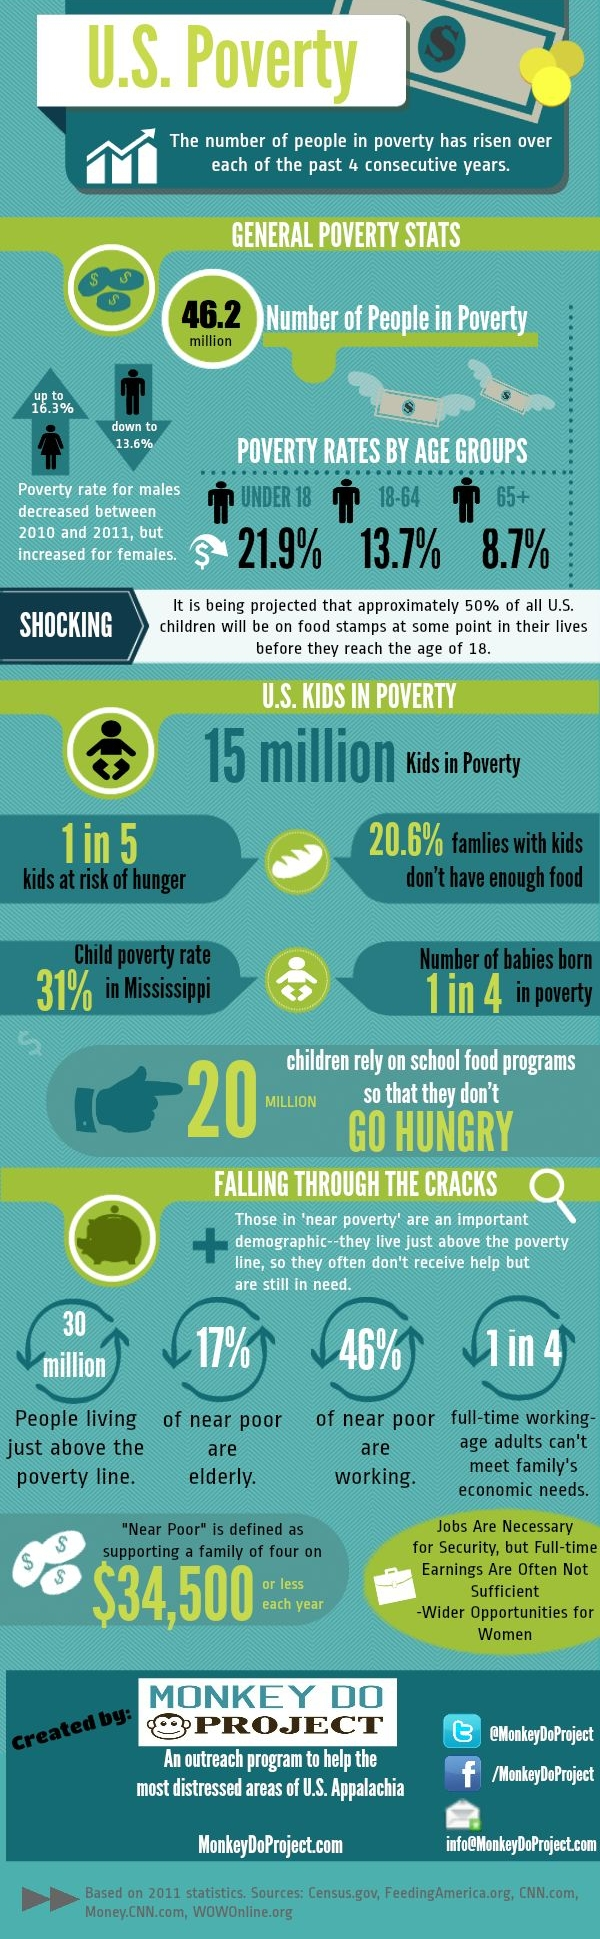 Infographic courtesy of the Monkey Do Project.